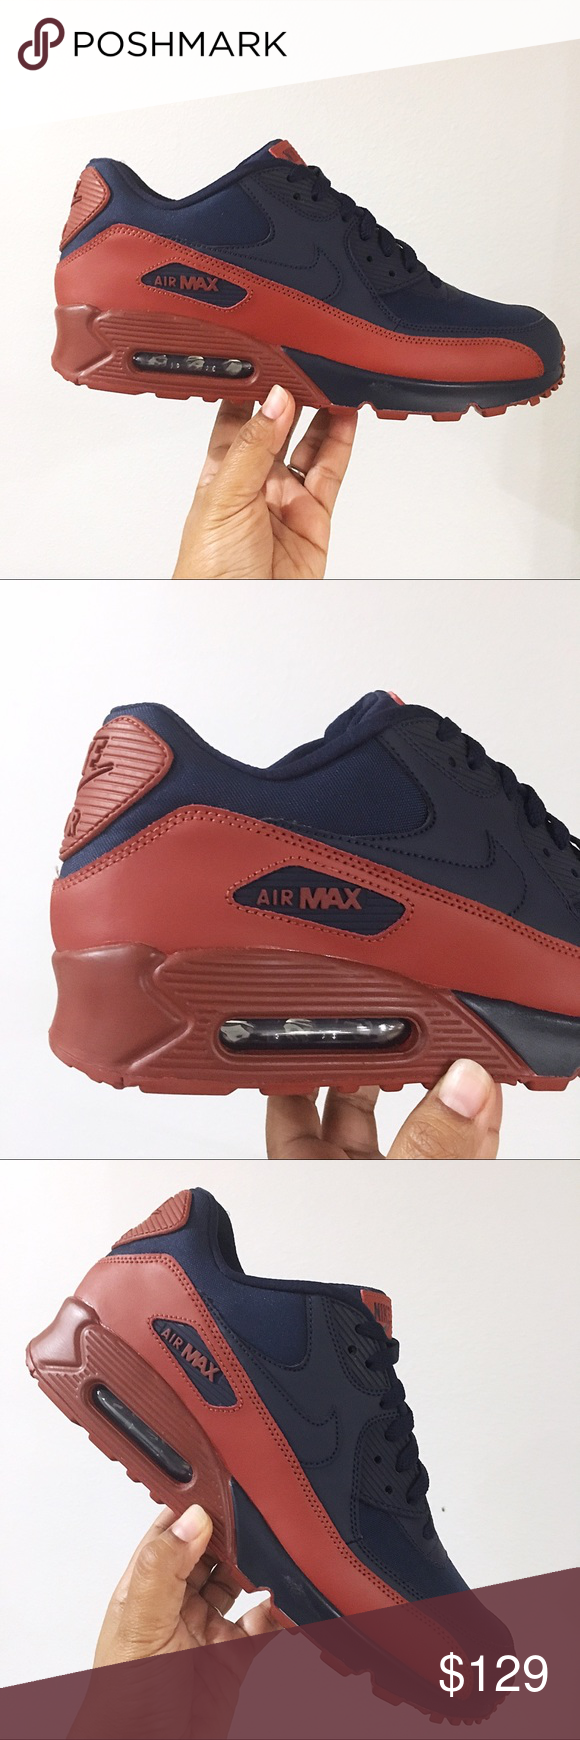 cheaper 28d77 63b12 Nike Shoes · Stone · Nike Air Max 90 Essential Navy Clay Brown Men 10.5  Brand New In Box no lid